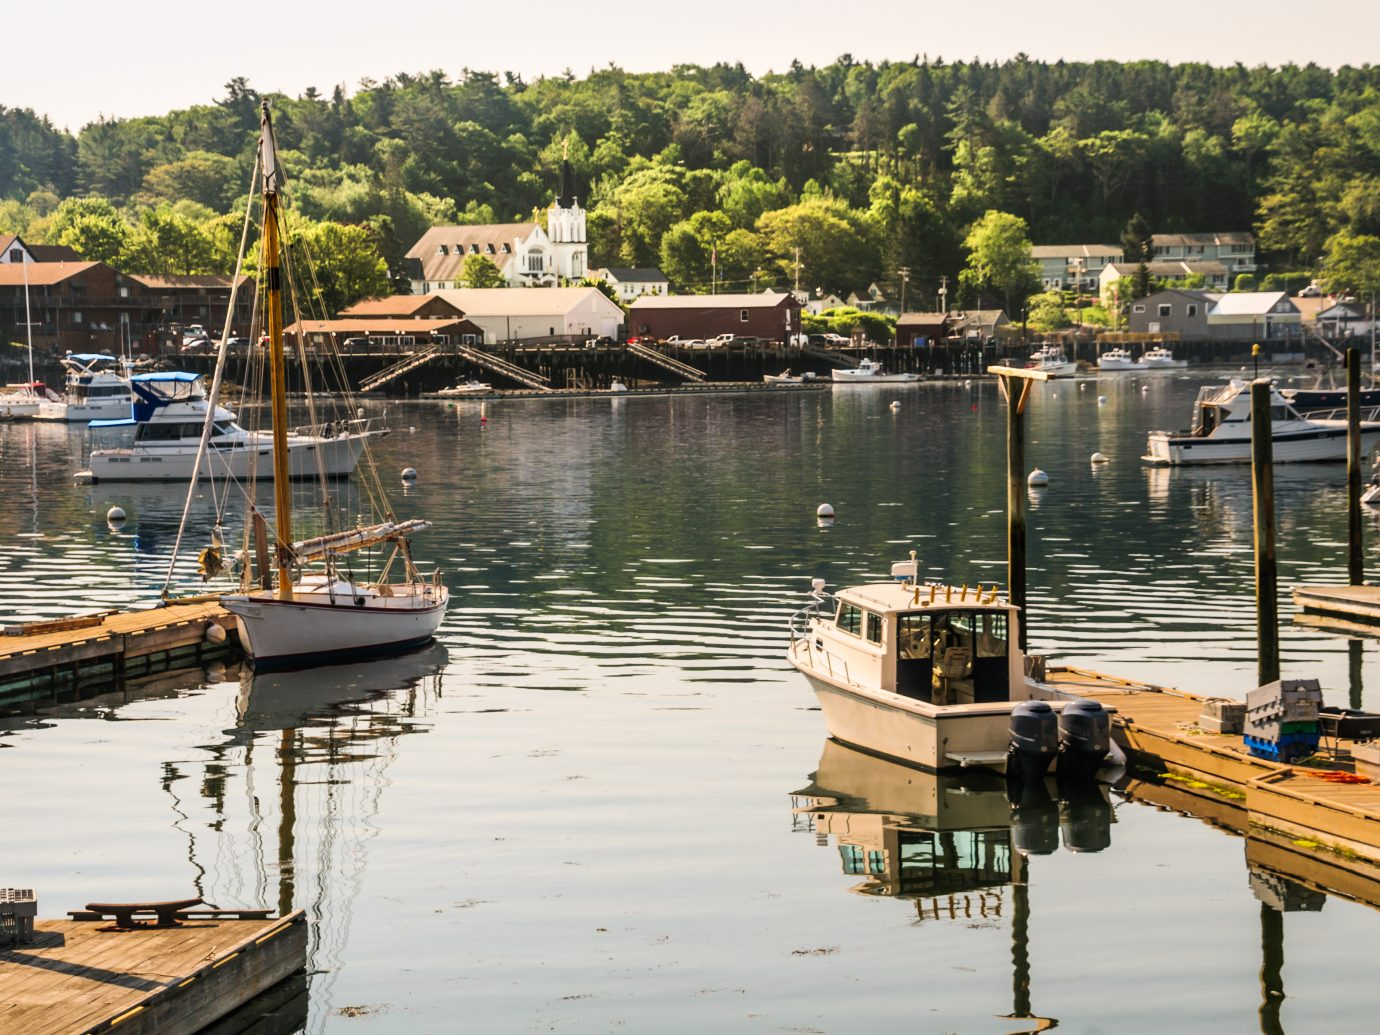 Morning light illuminates the boats in the waters of Boothbay Harbor, Maine in mid June.